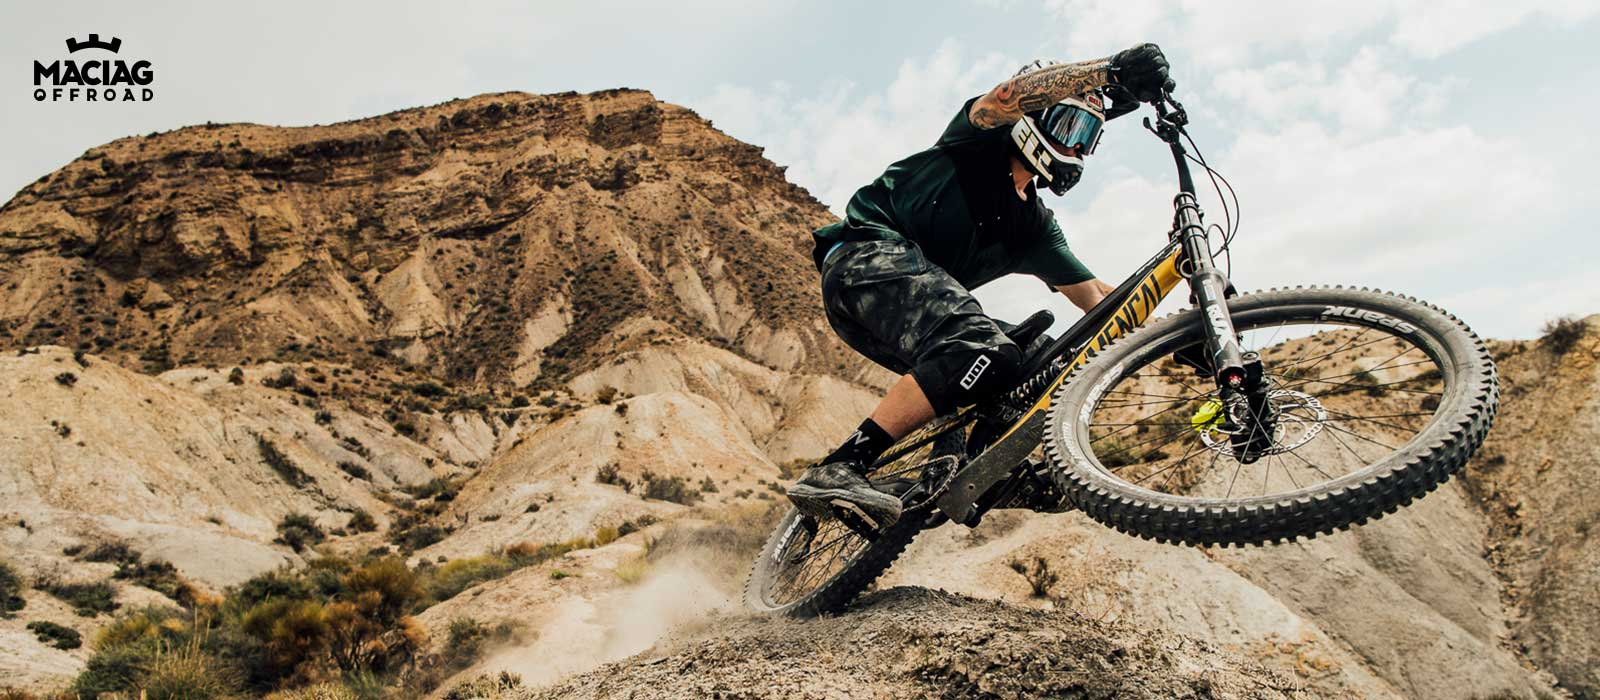 Mountain Road Bike Wallpapers: Free Motocross & Mountainbike Wallpaper